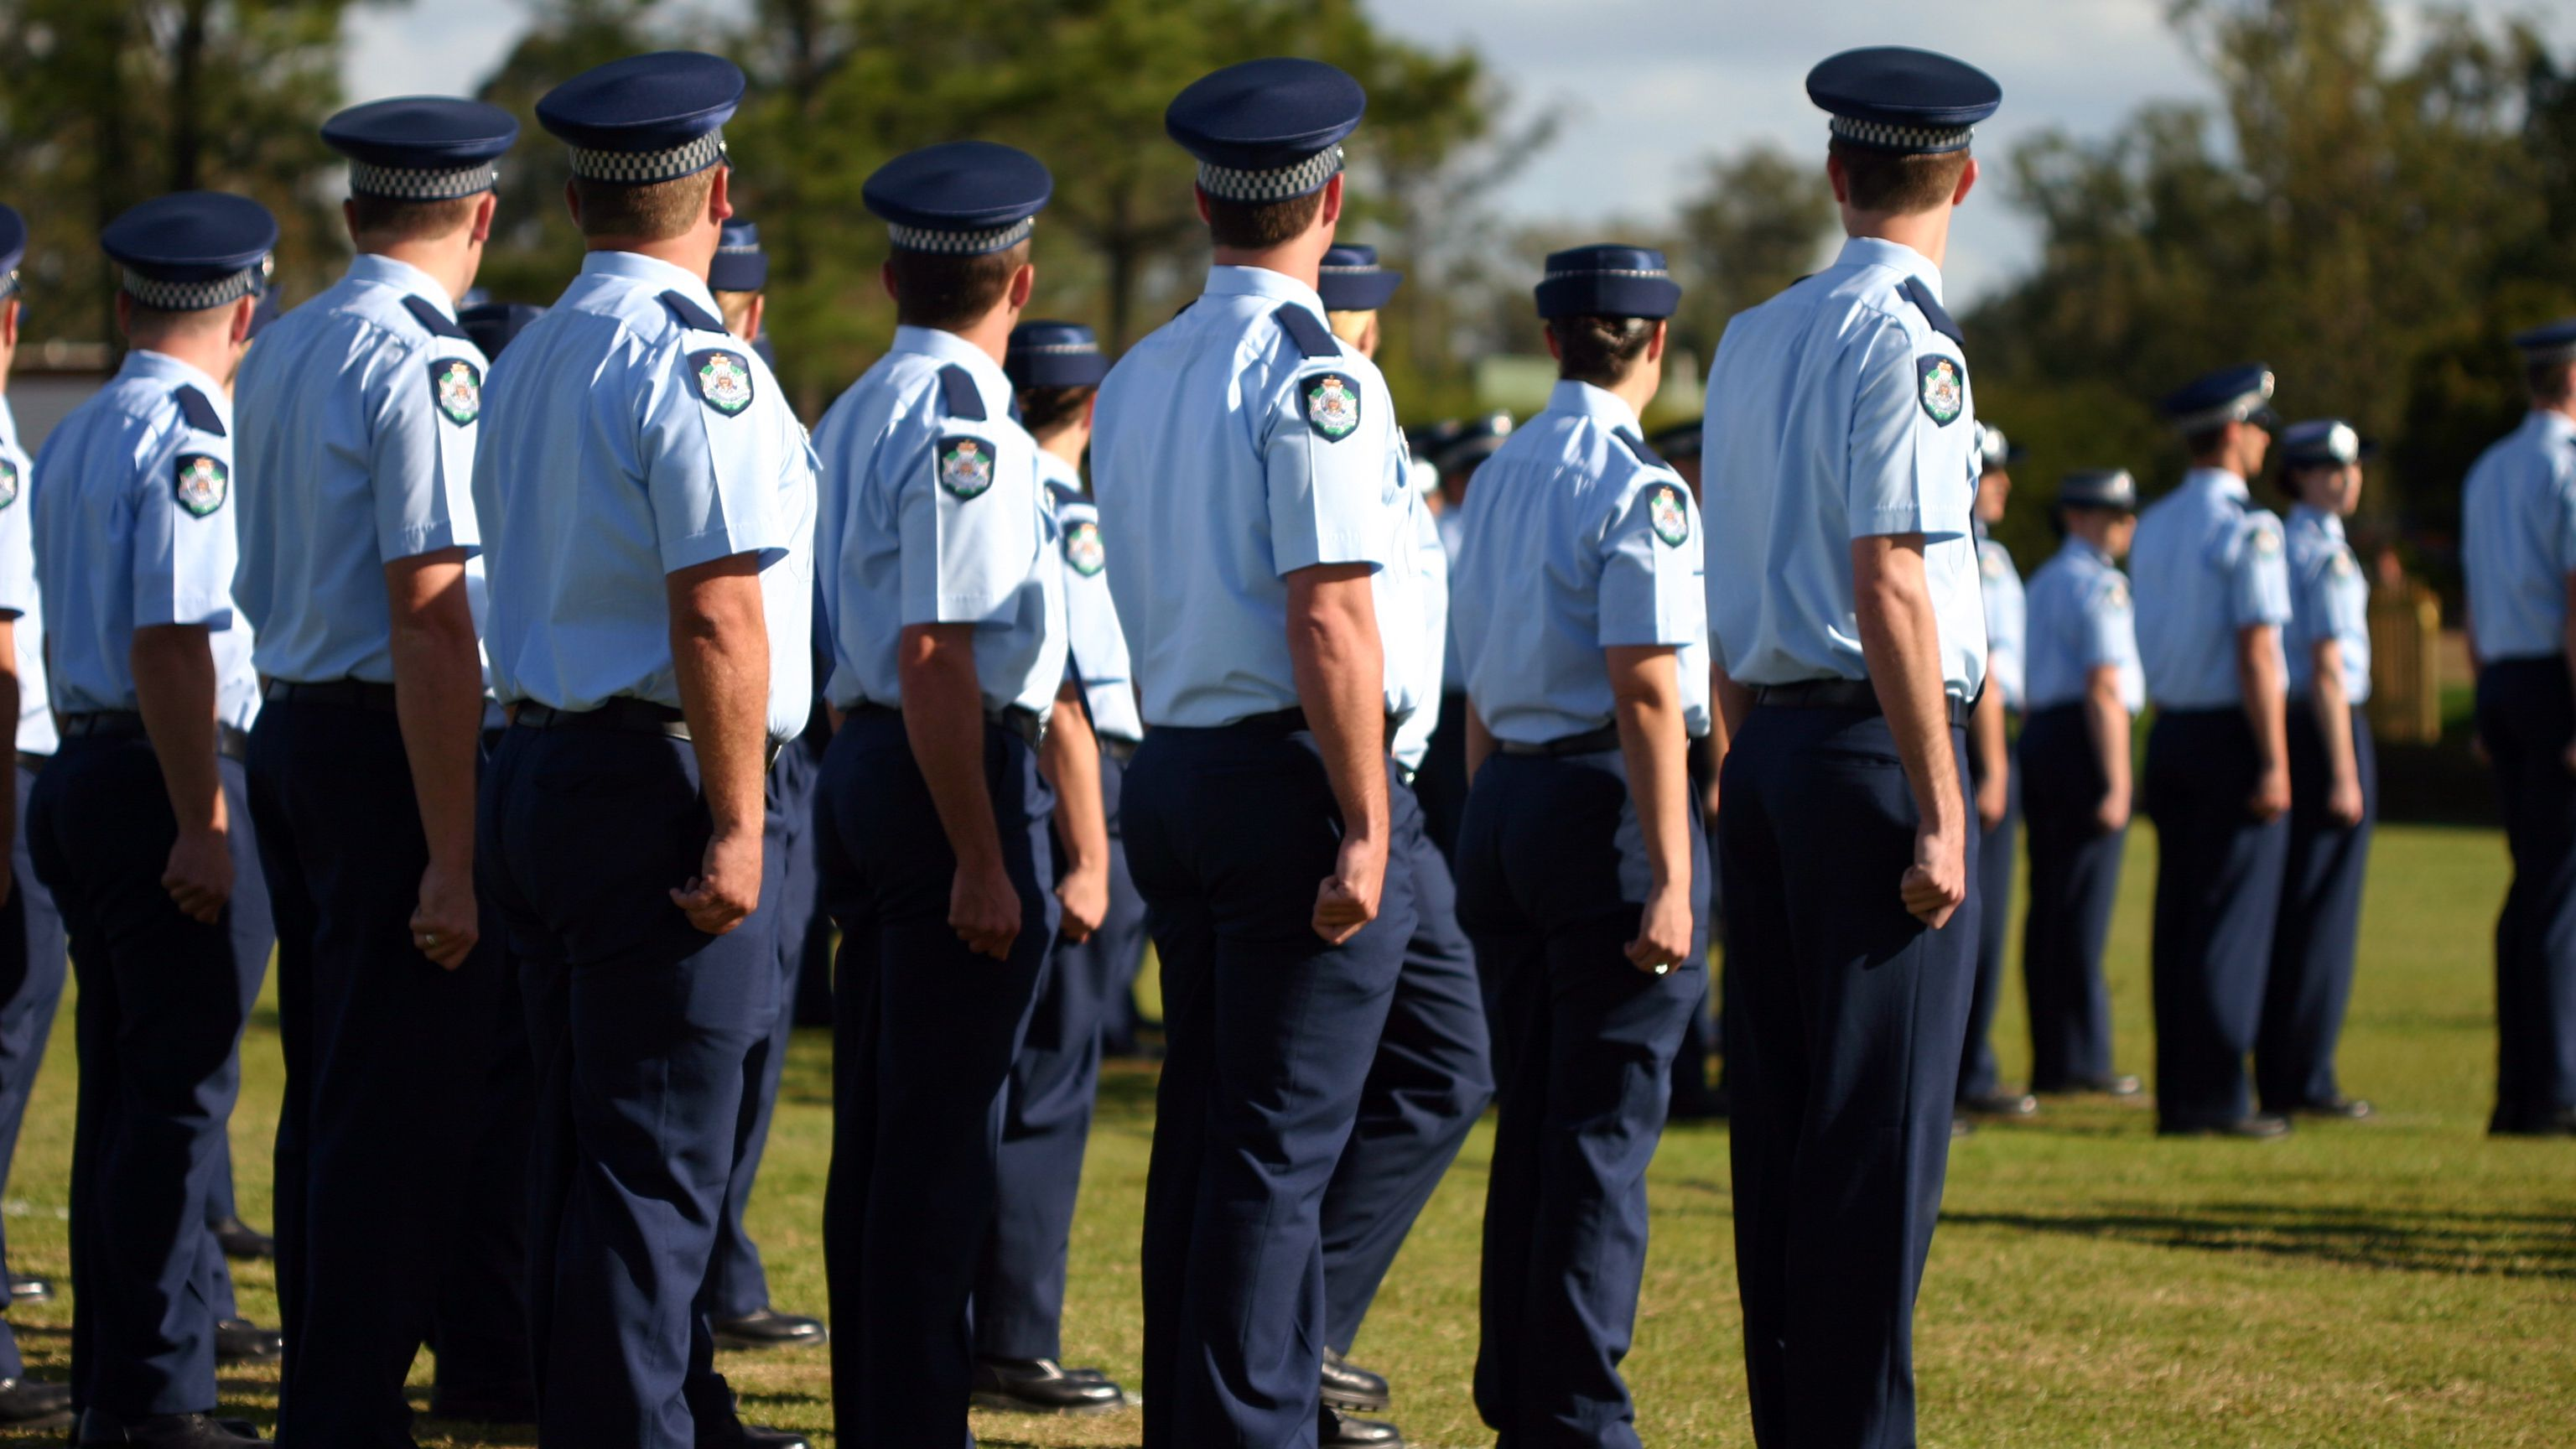 What to Expect on Your First Day at the Police Academy